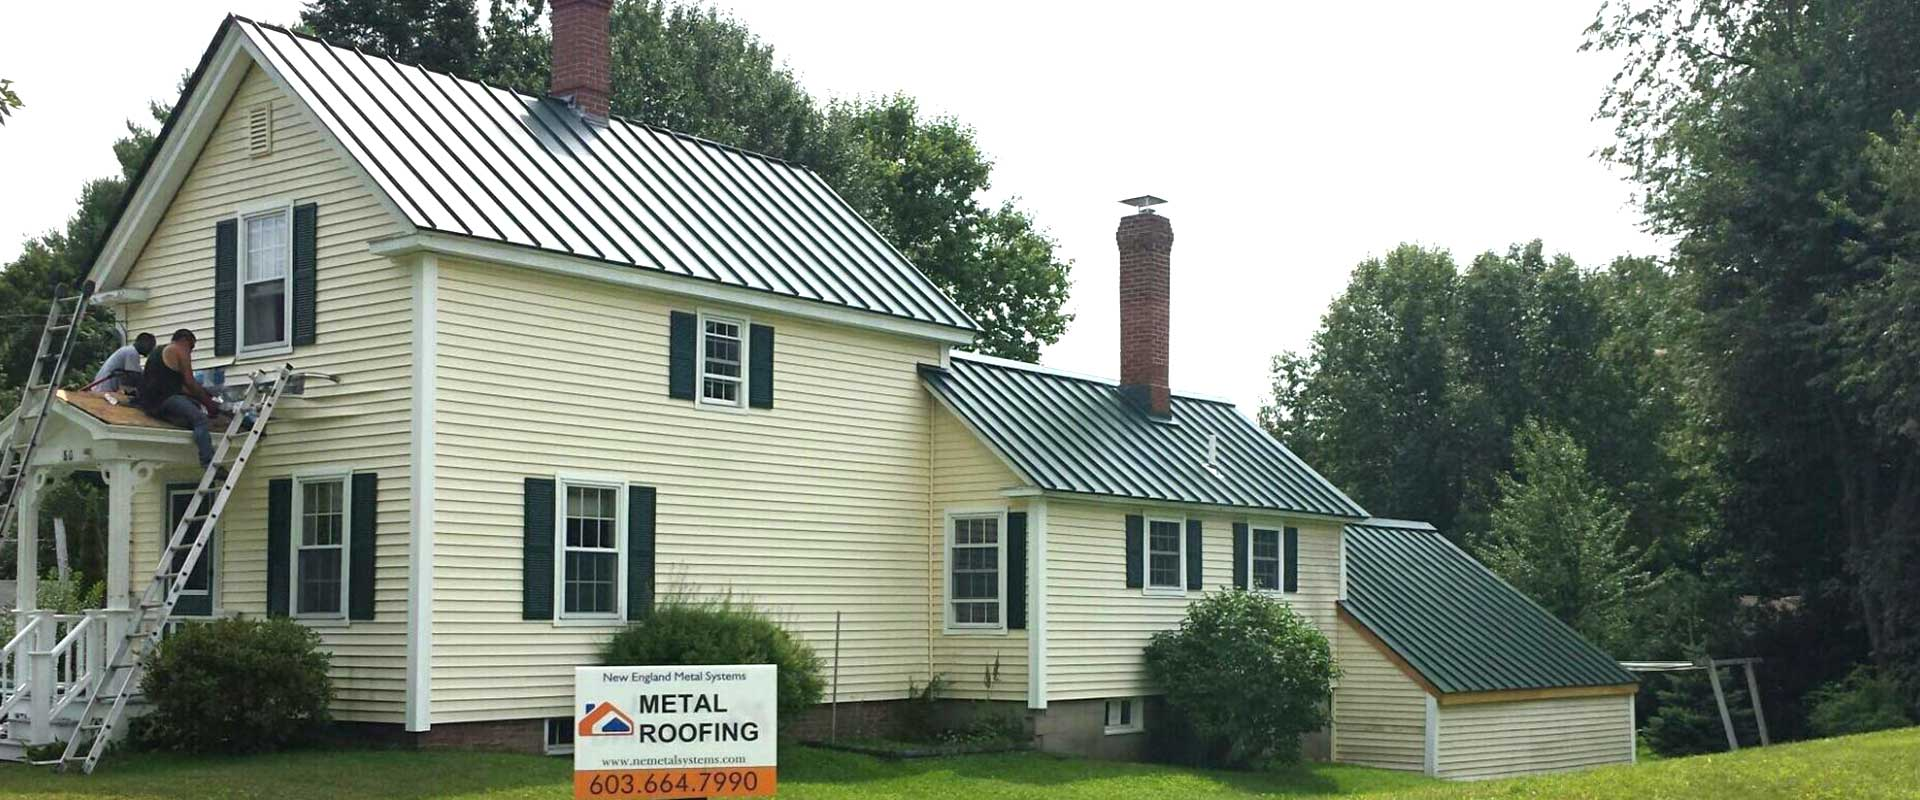 Metal Roofing East Kingston Exeter Newton Nh New